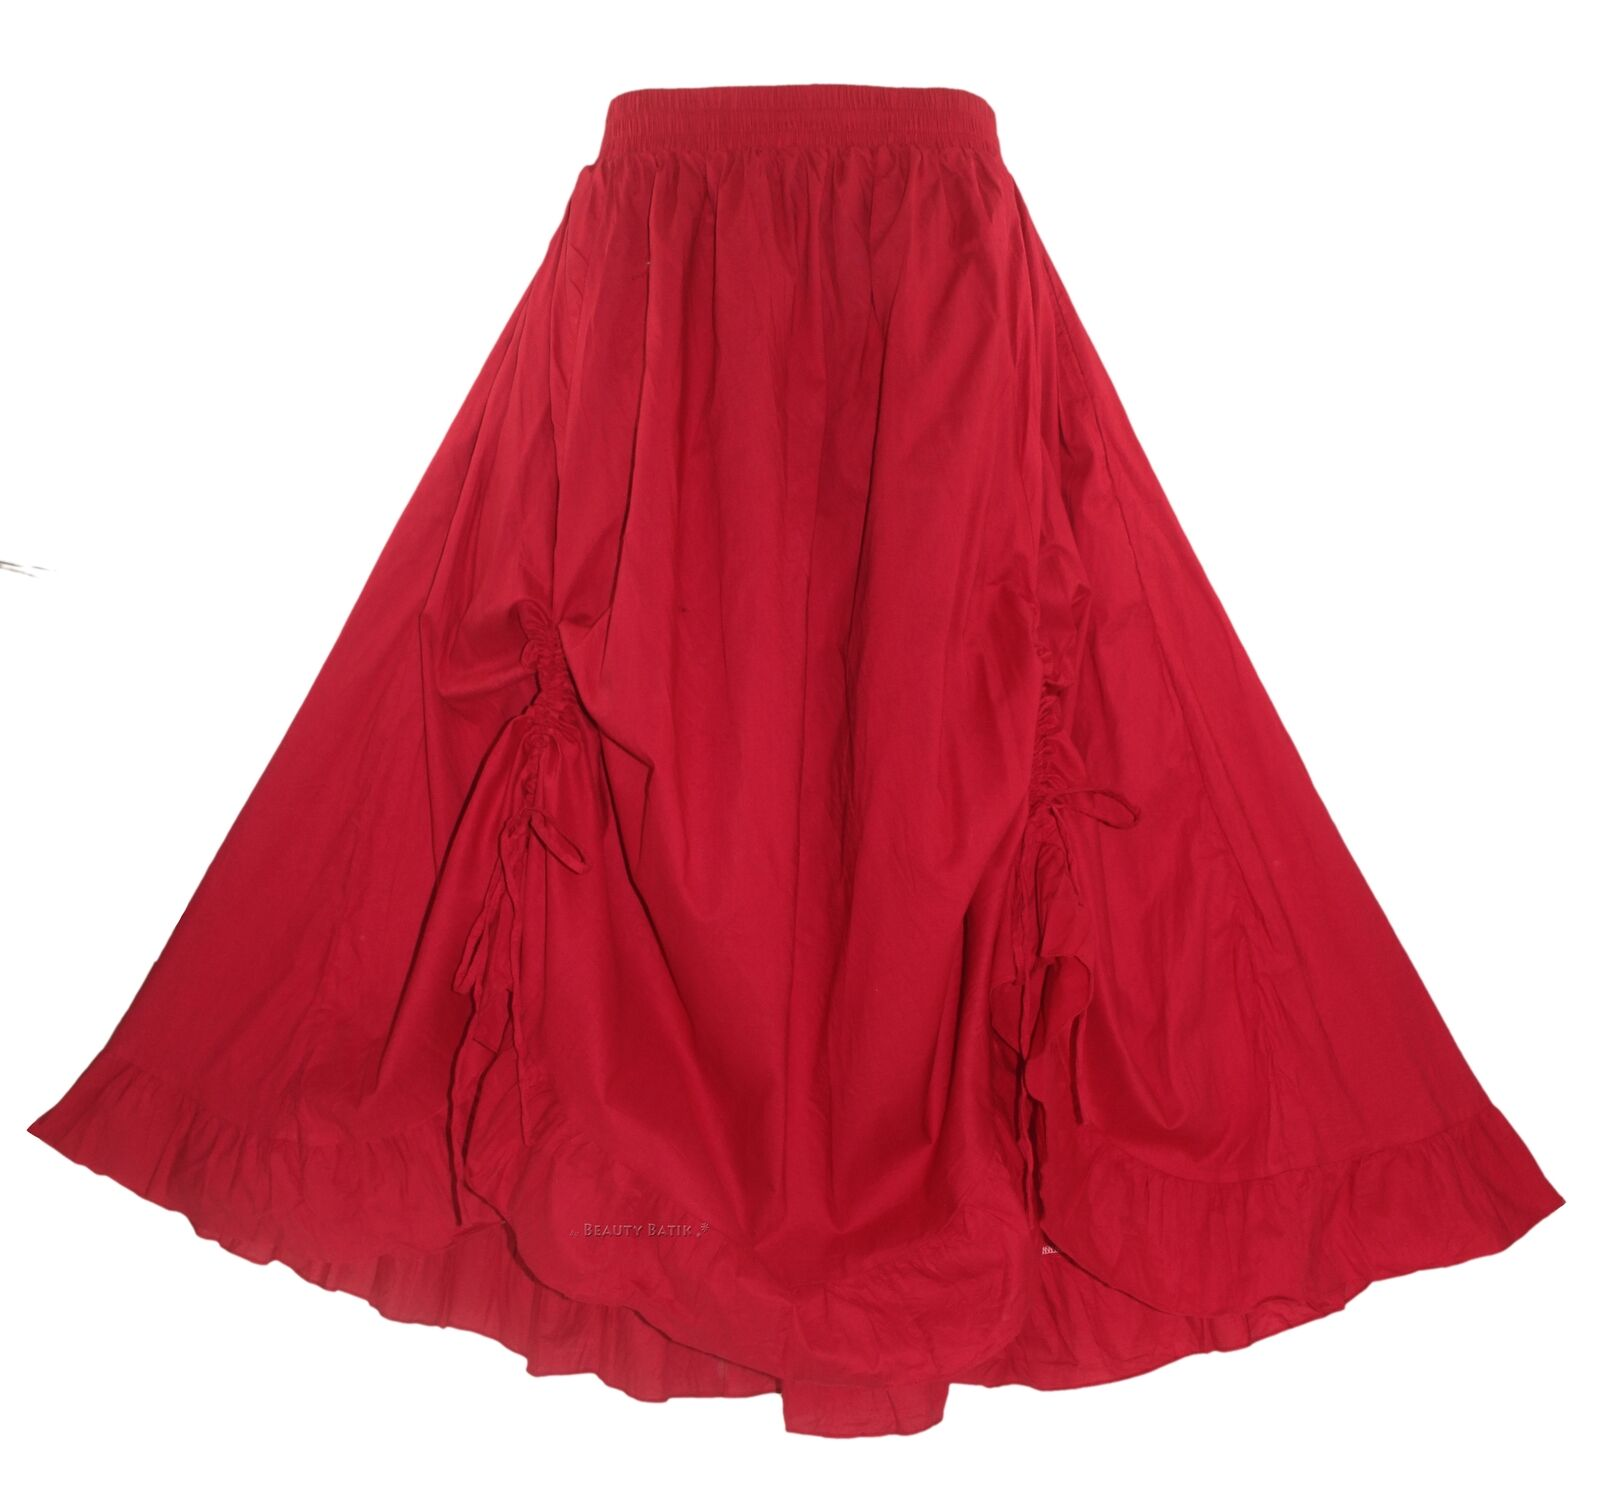 Red Women Cotton BOHO Gypsy Long Maxi Victorian Flare Skirt 1X 2X 18 20